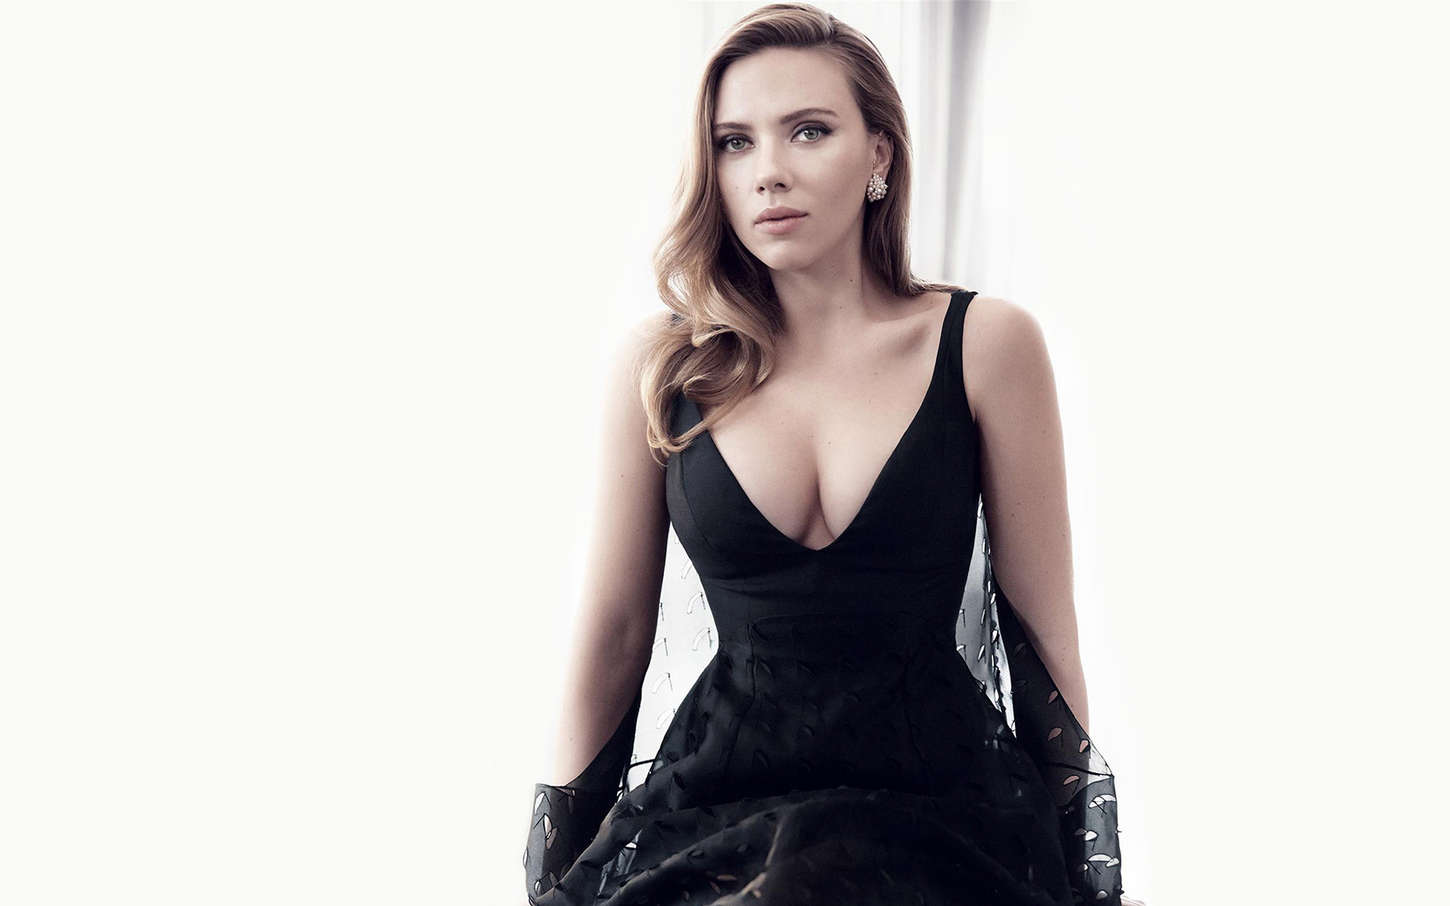 Scarlett Johansson Hot Wallpapers Scarlett Johansson